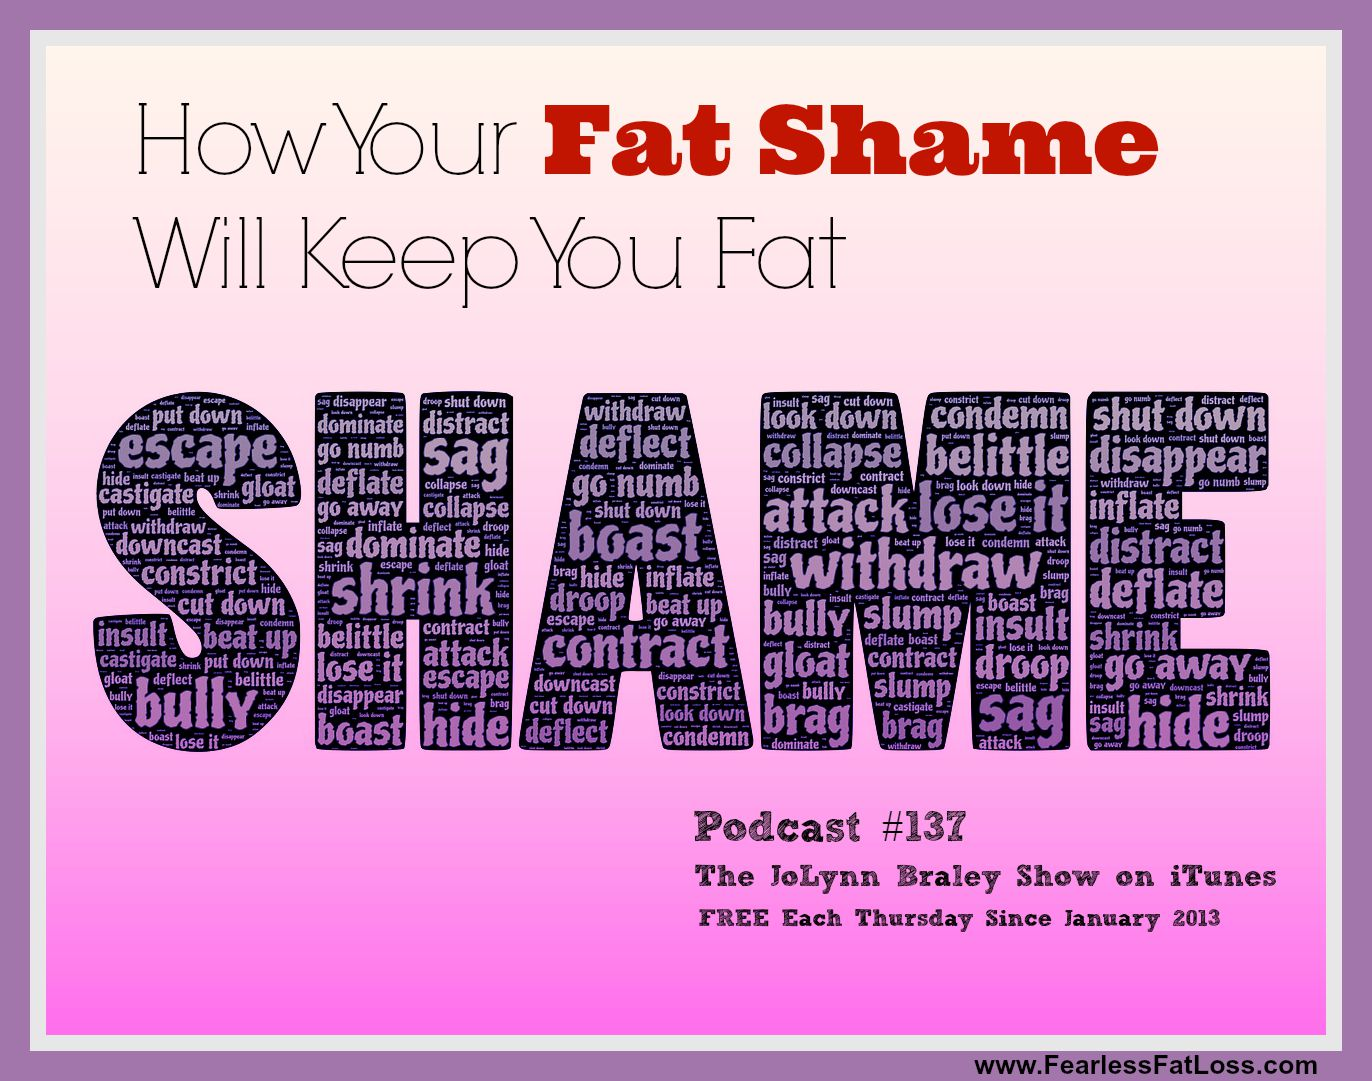 How Your Fat Shame Will Keep You Fat - FearlessFatLoss